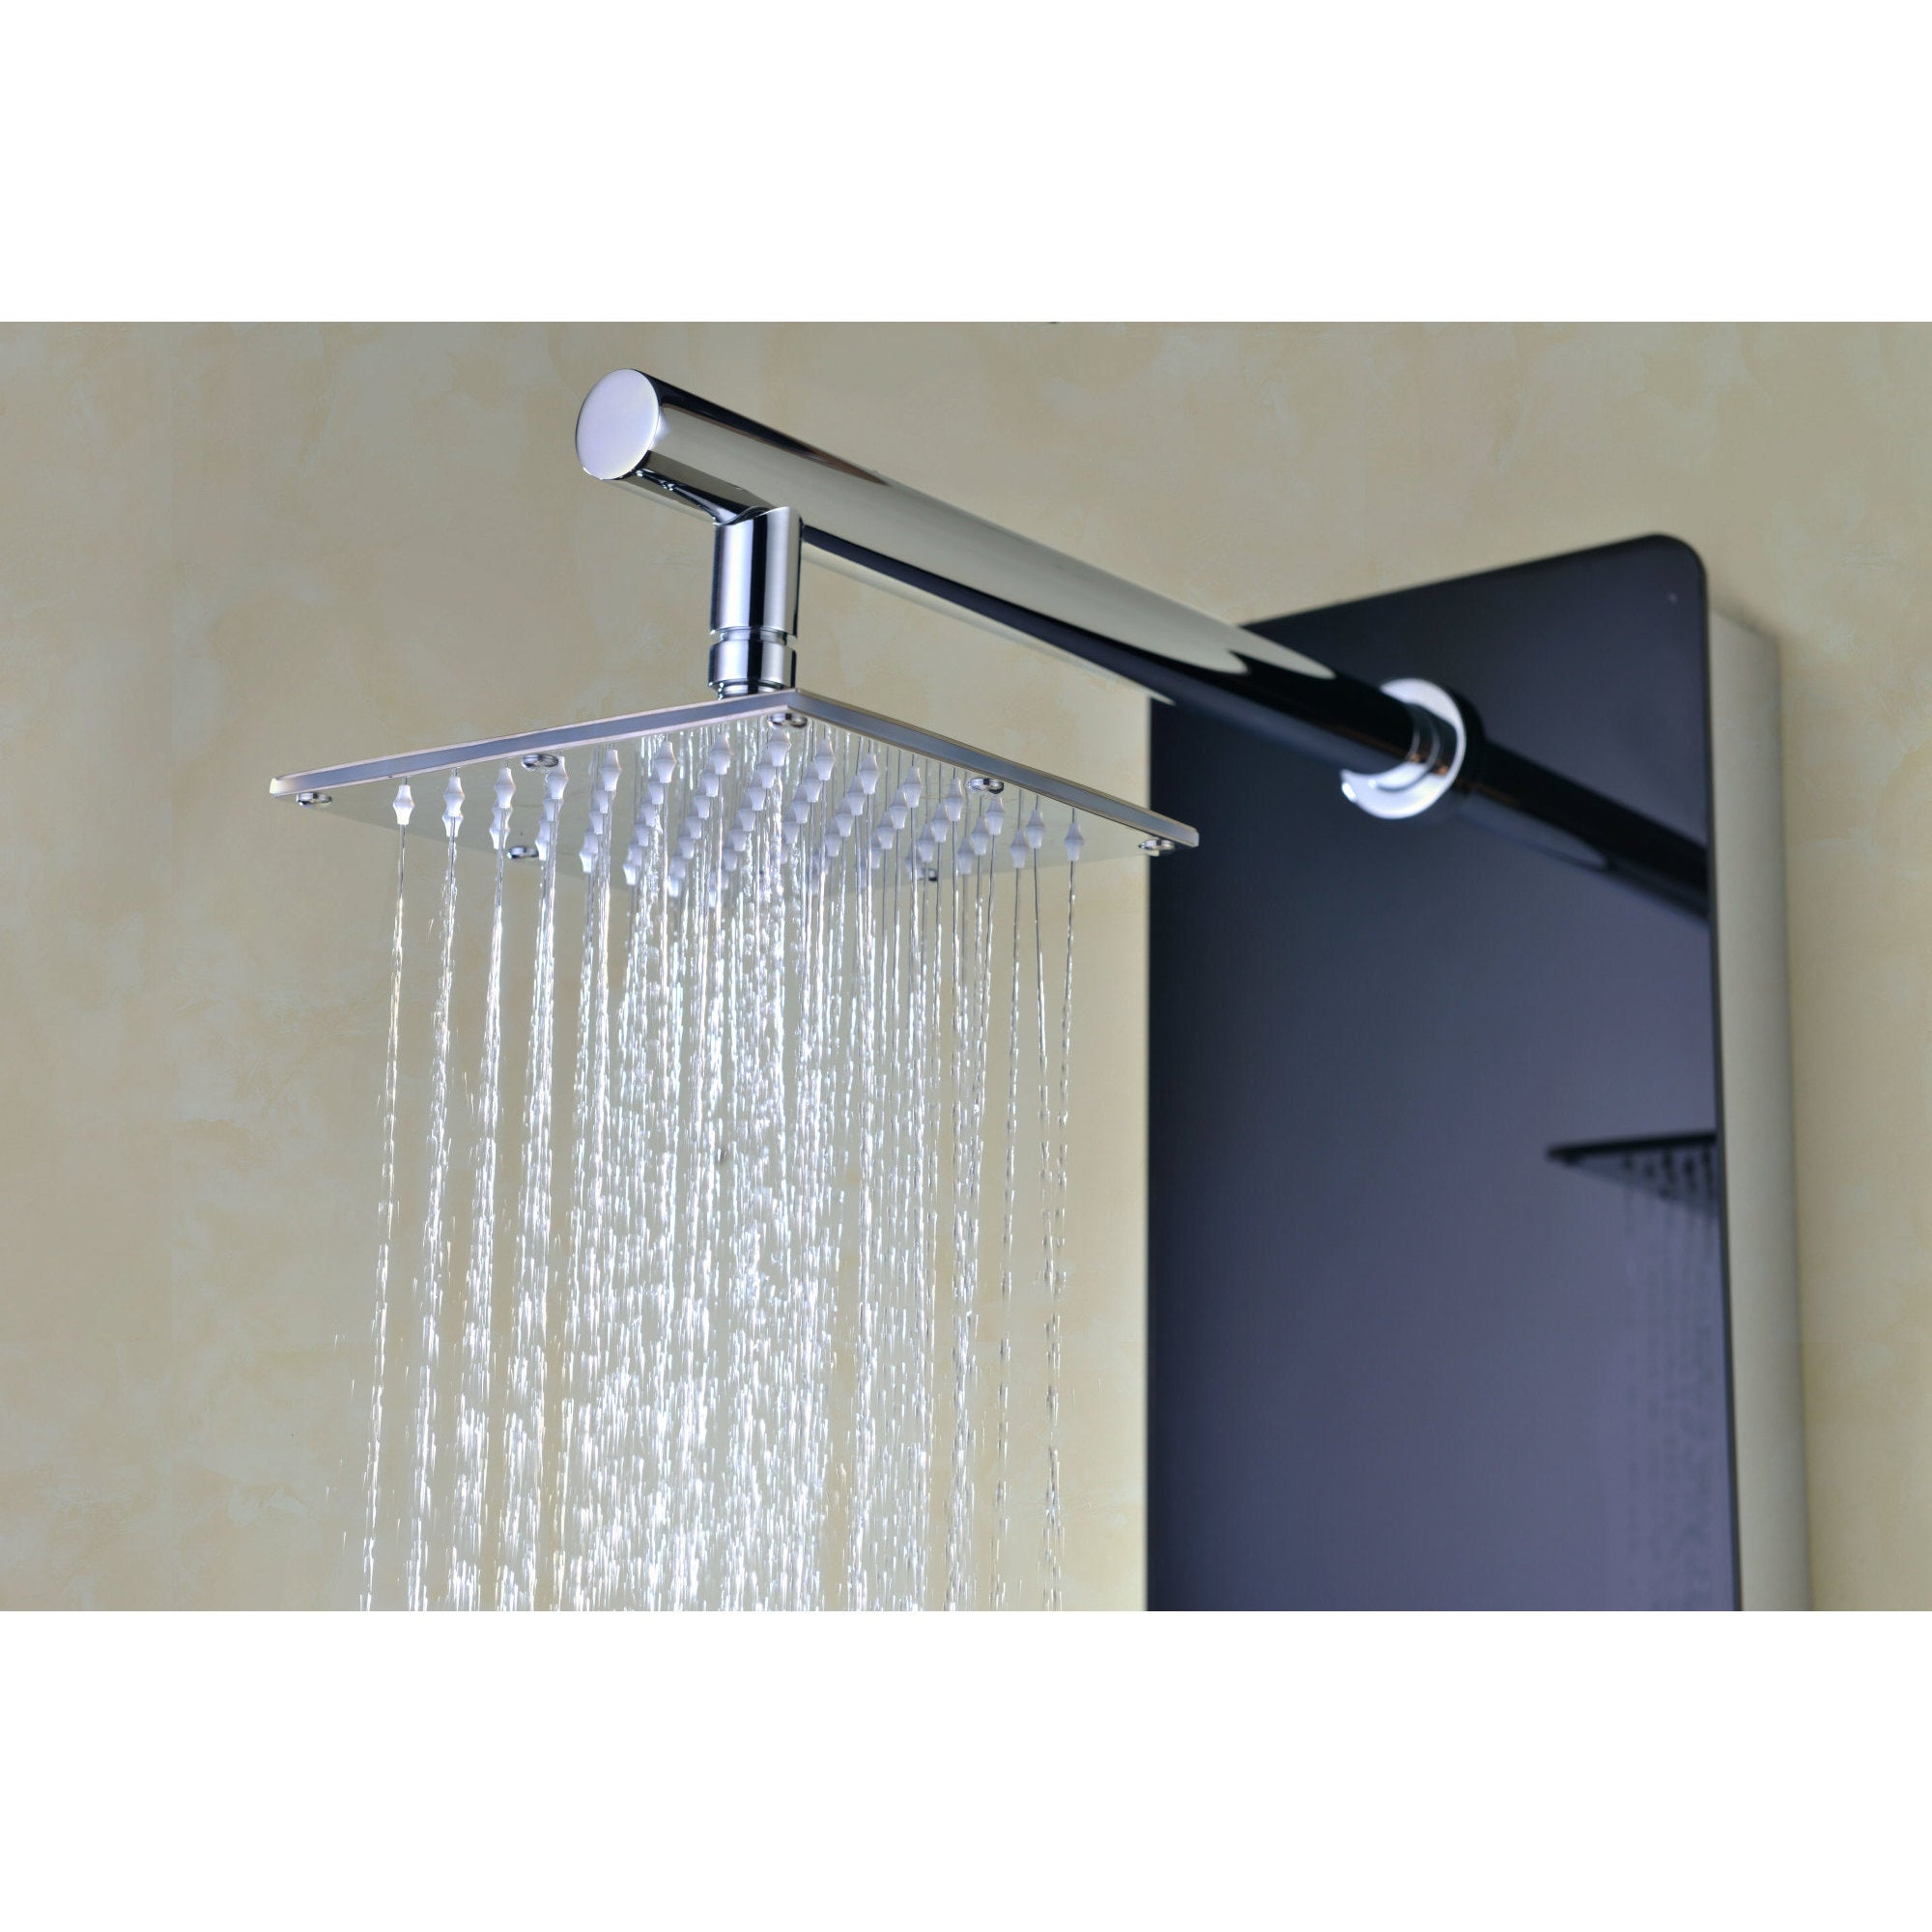 Shop ANZZI Melody 6-jetted Full Body Shower Panel System in Black ...